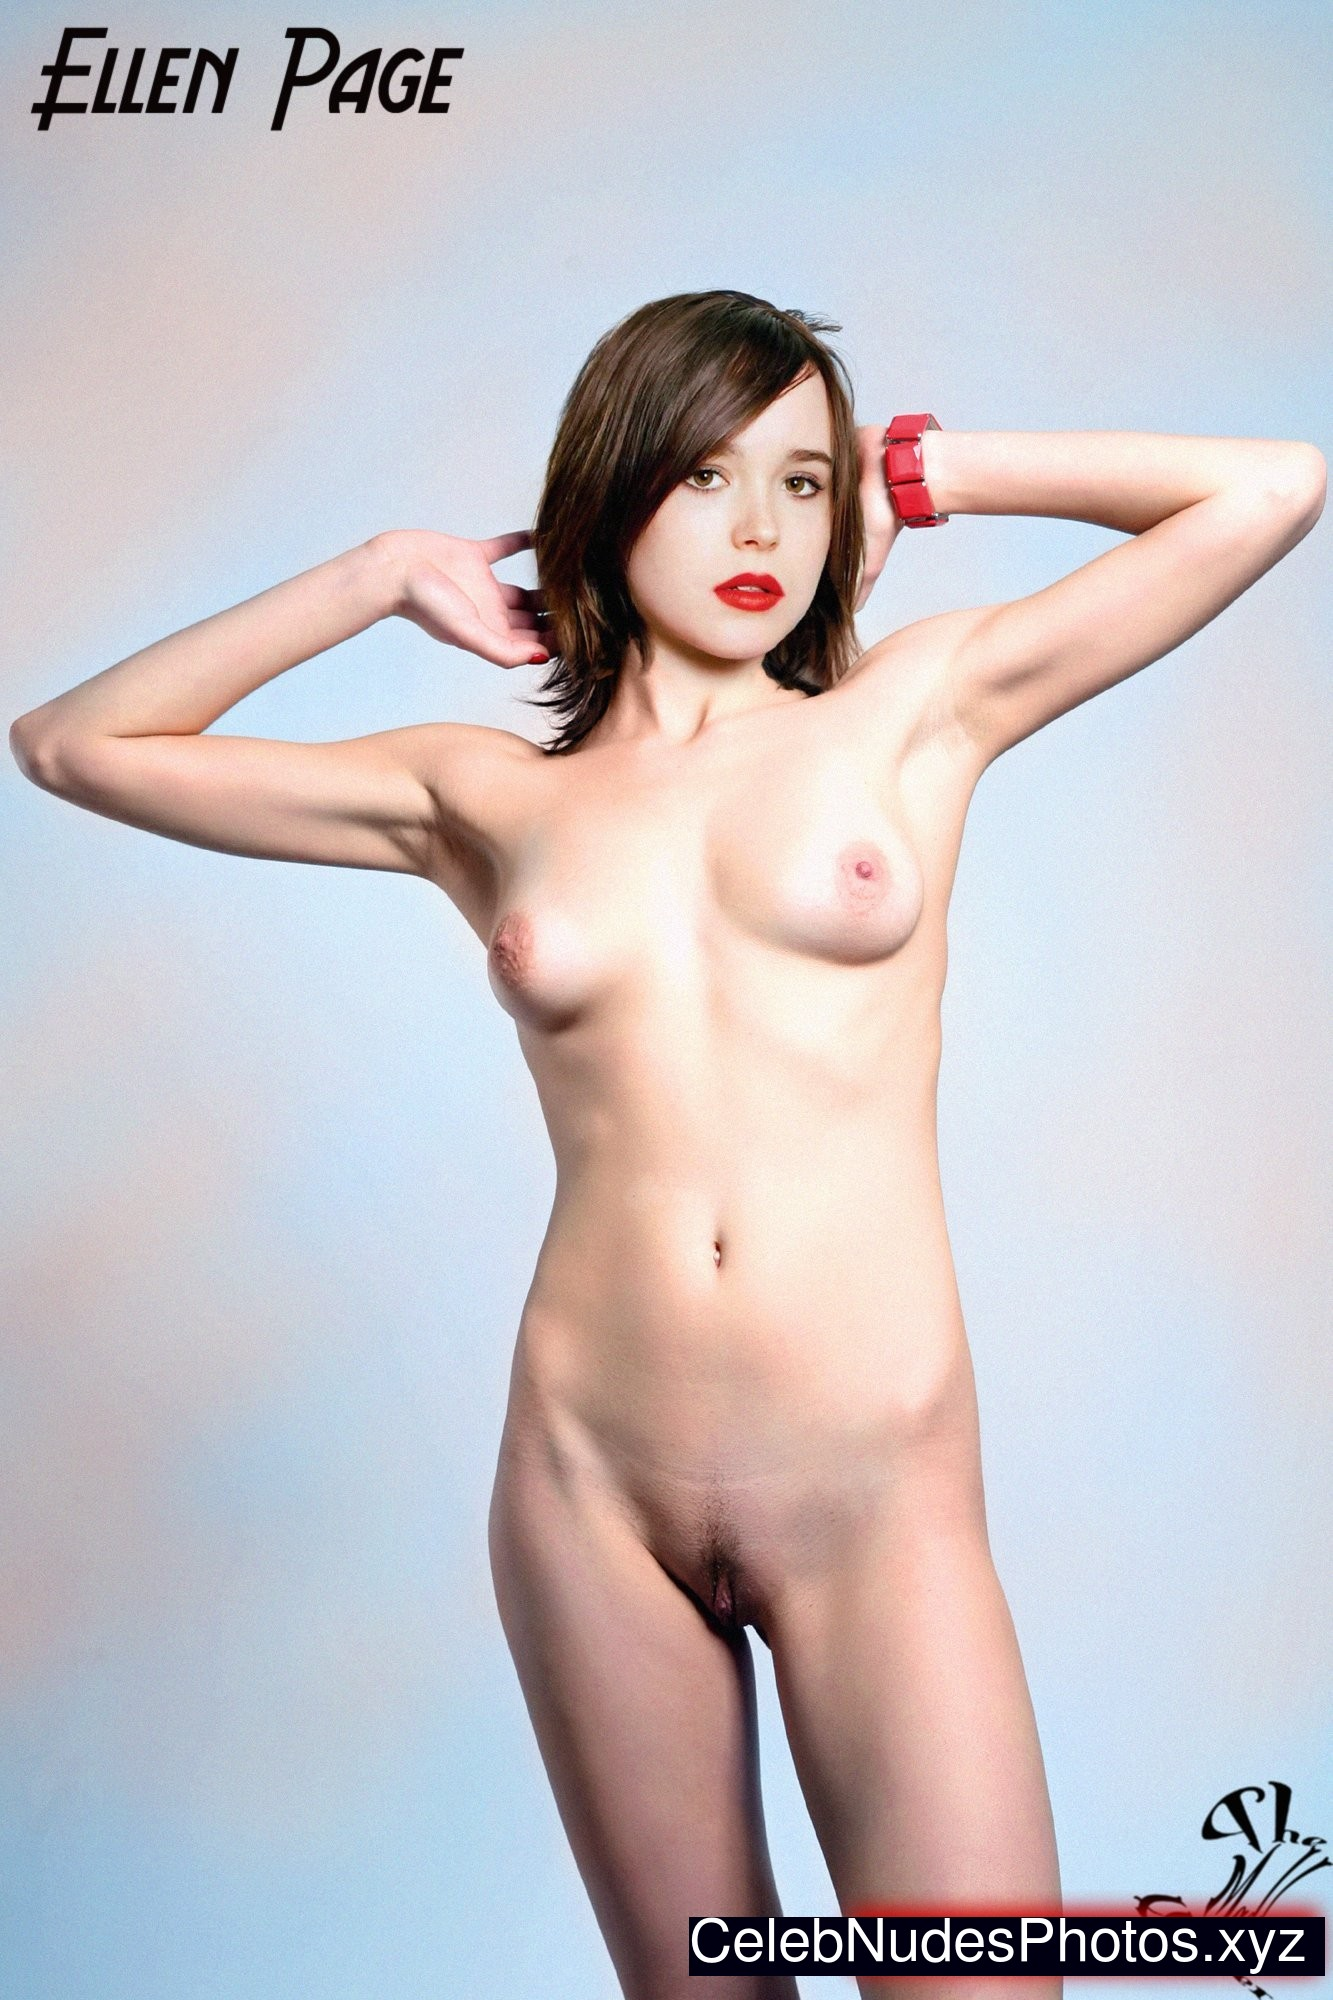 Ellen page in topless right! good